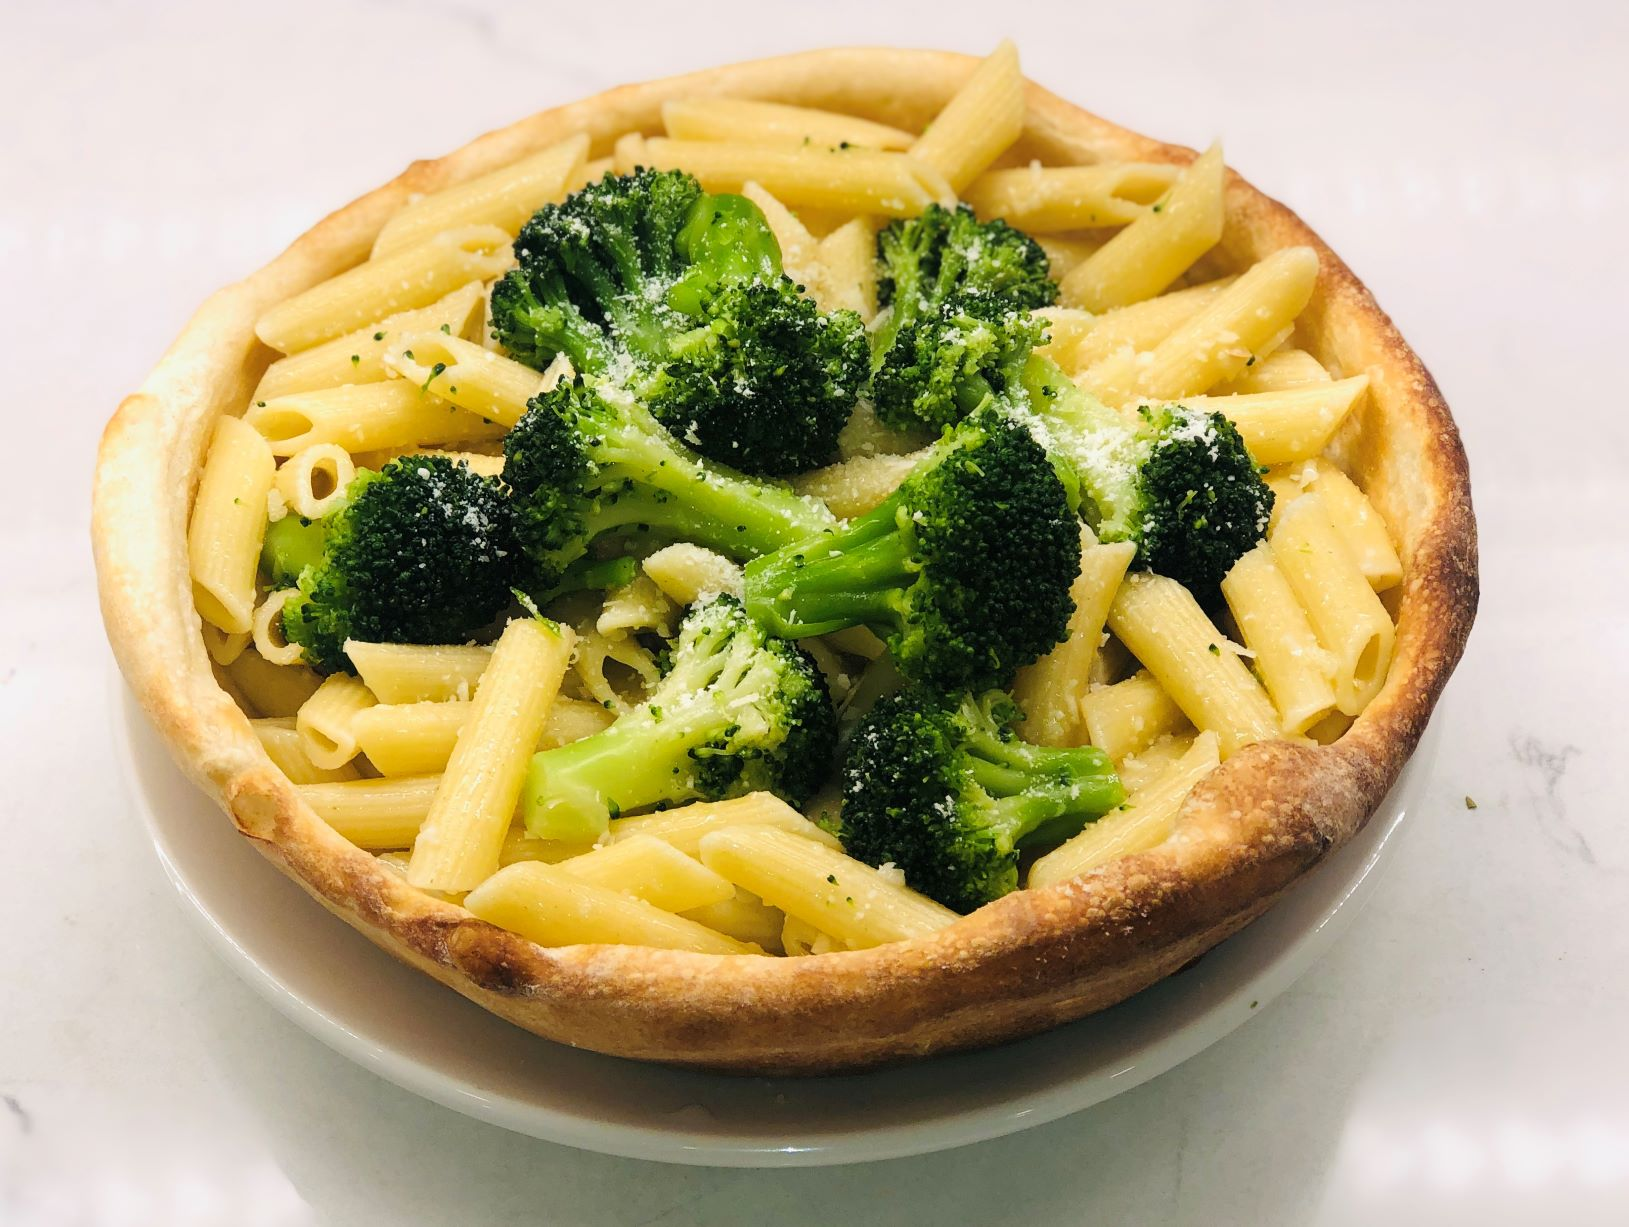 Pasta w/ oil, garlic, & broccoli